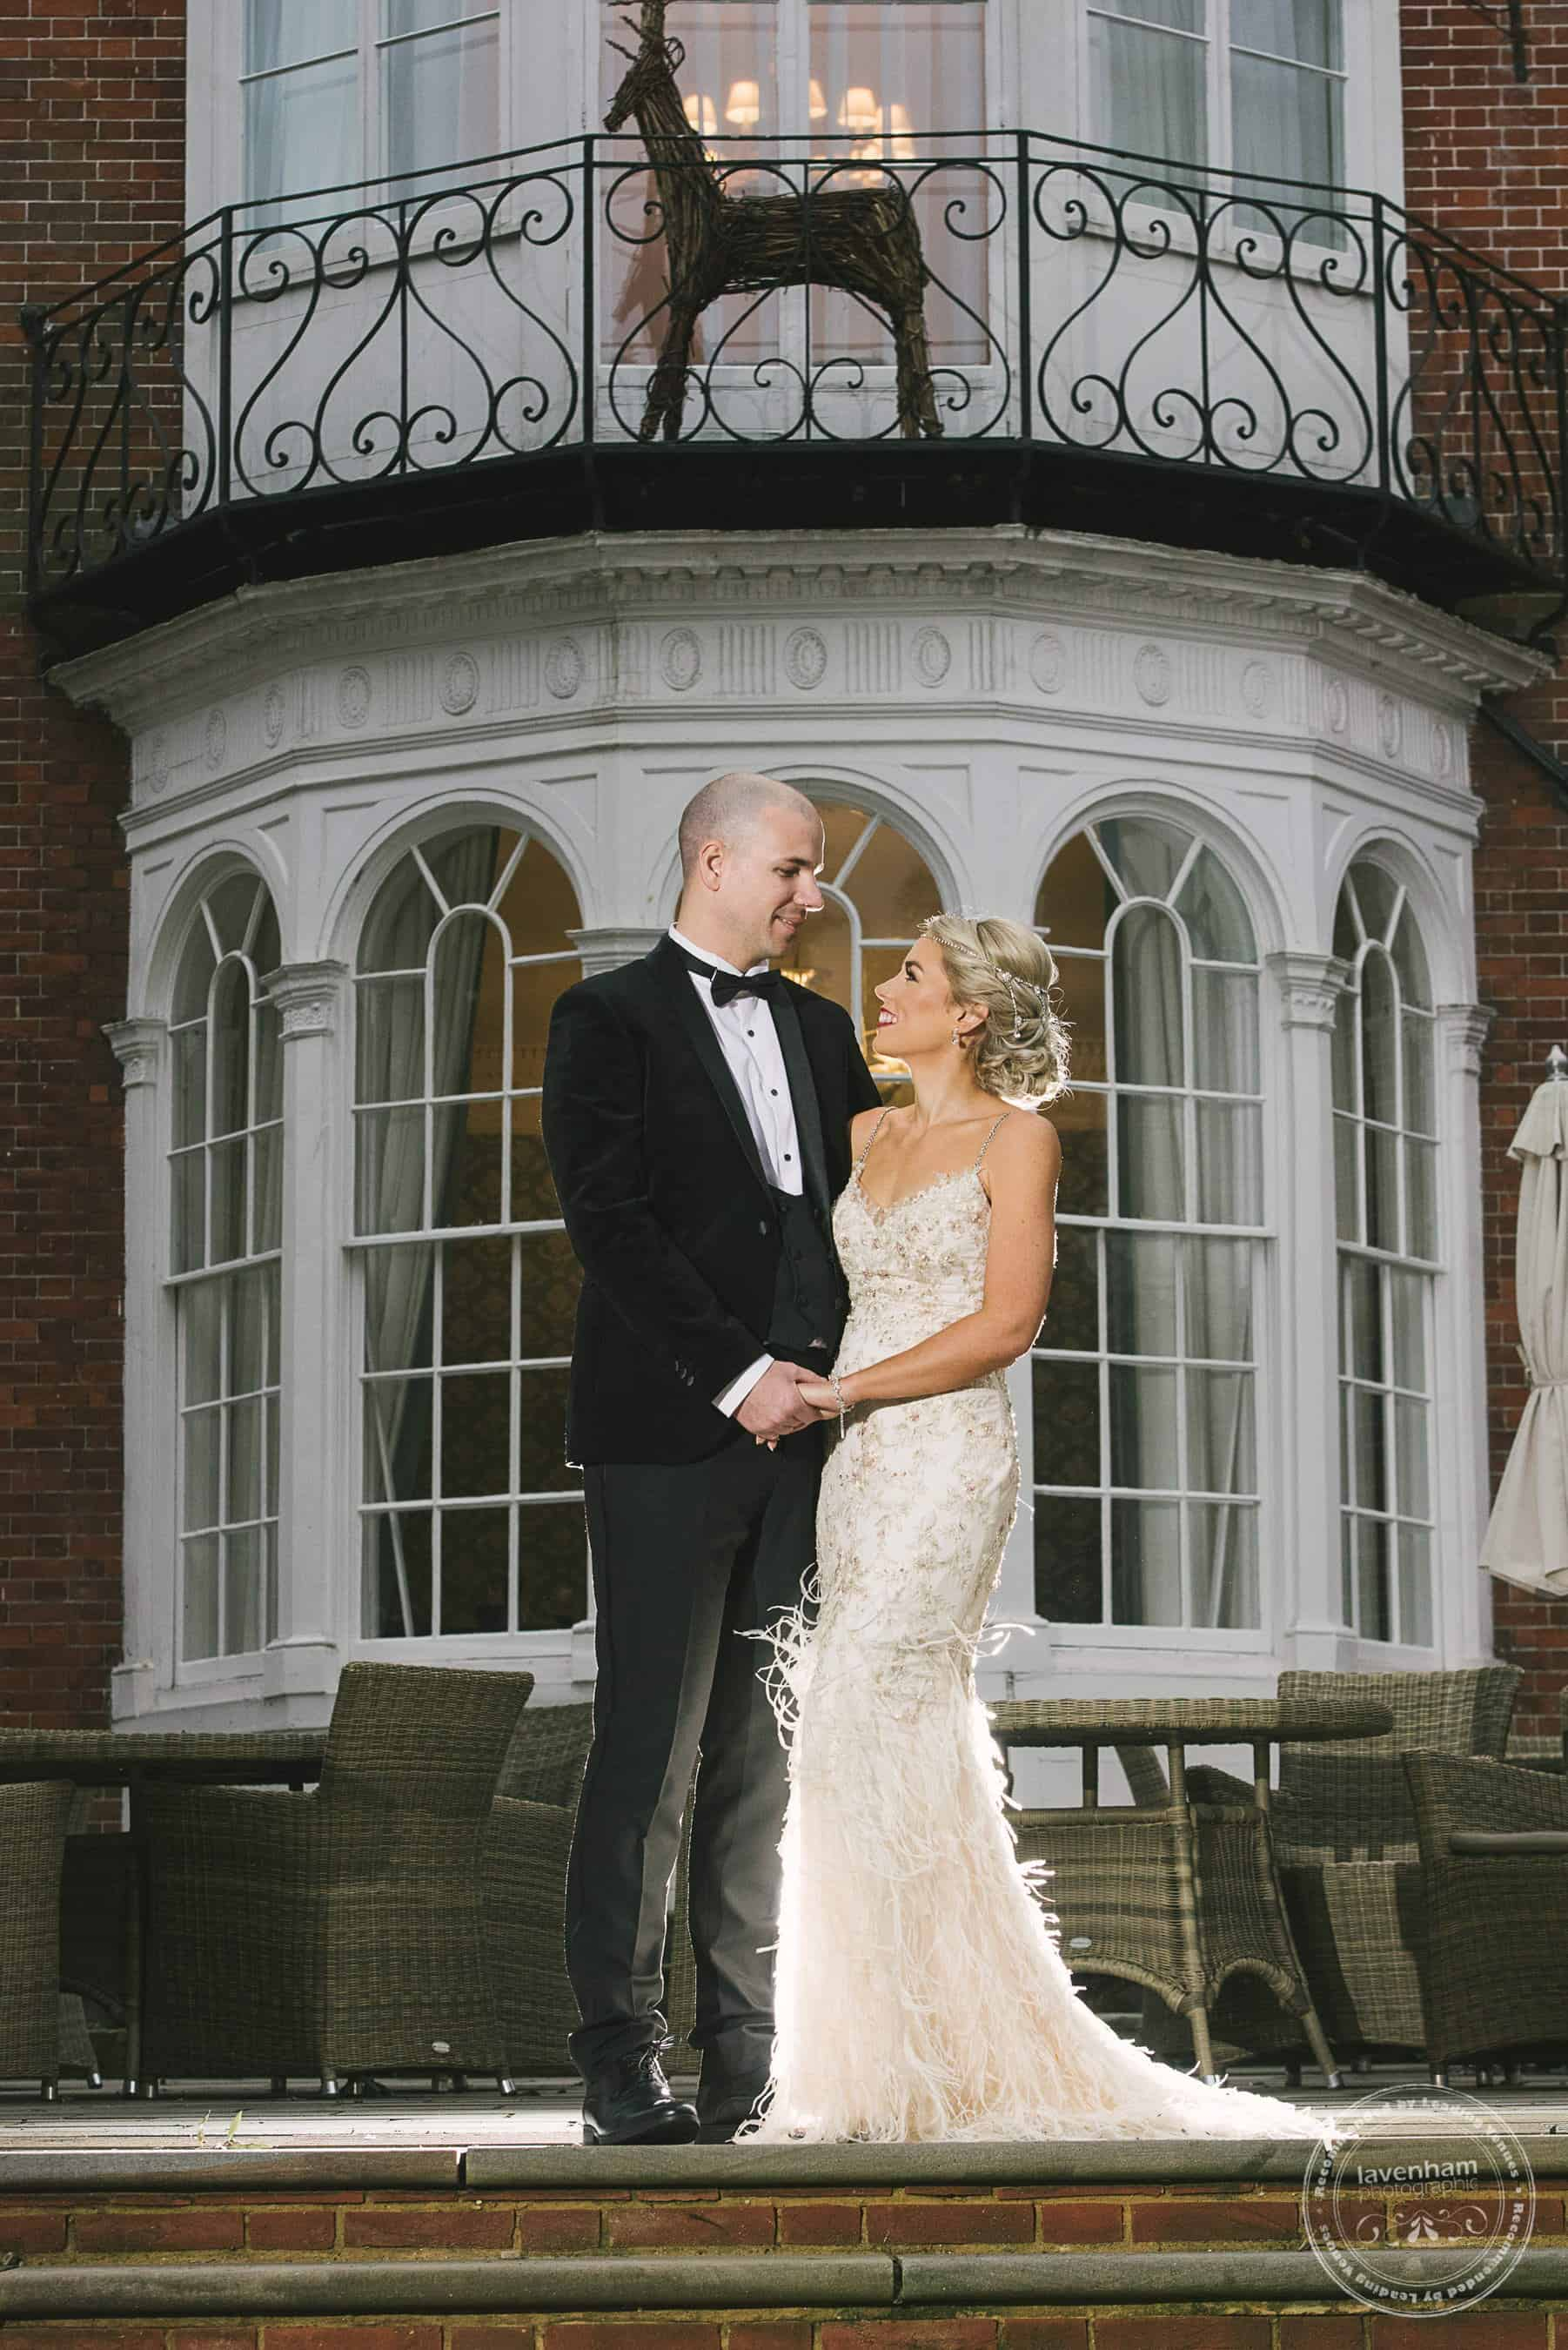 211218 Greyfriars Colchester Wedding Photography Essex Lavenham Photographic 024